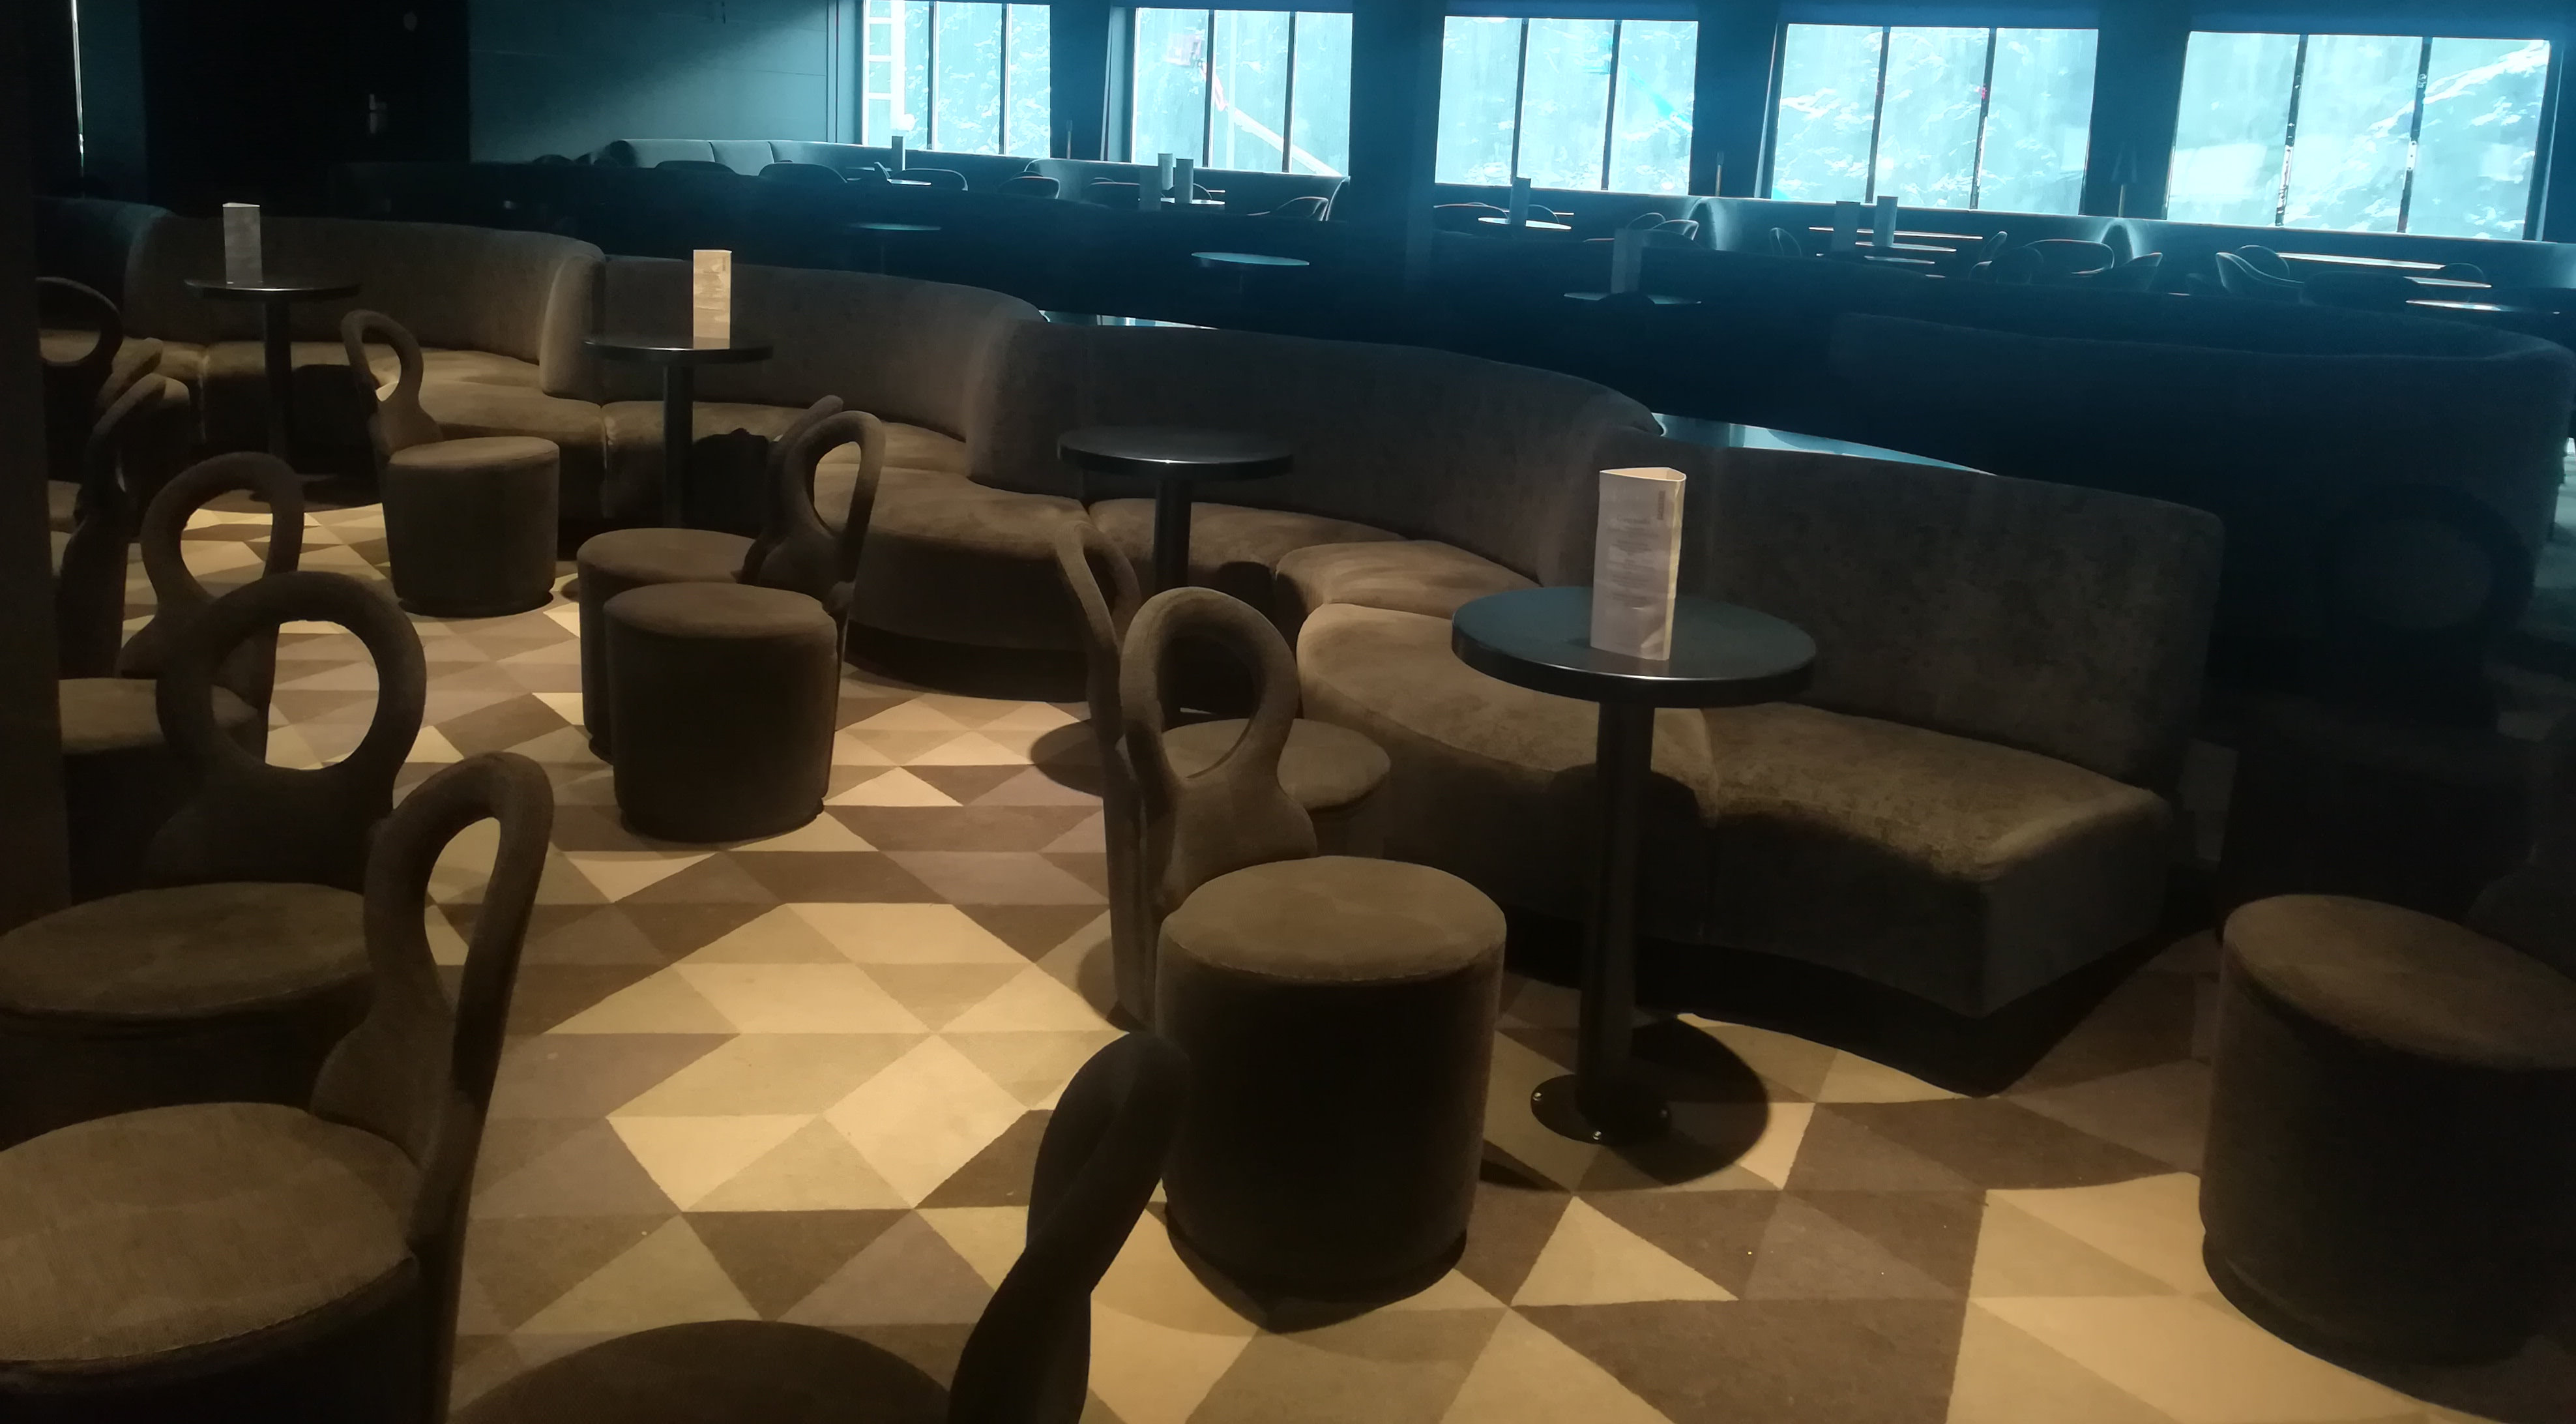 Cruise ship and Ferrie's dining and lounge areas chairs seats and tables